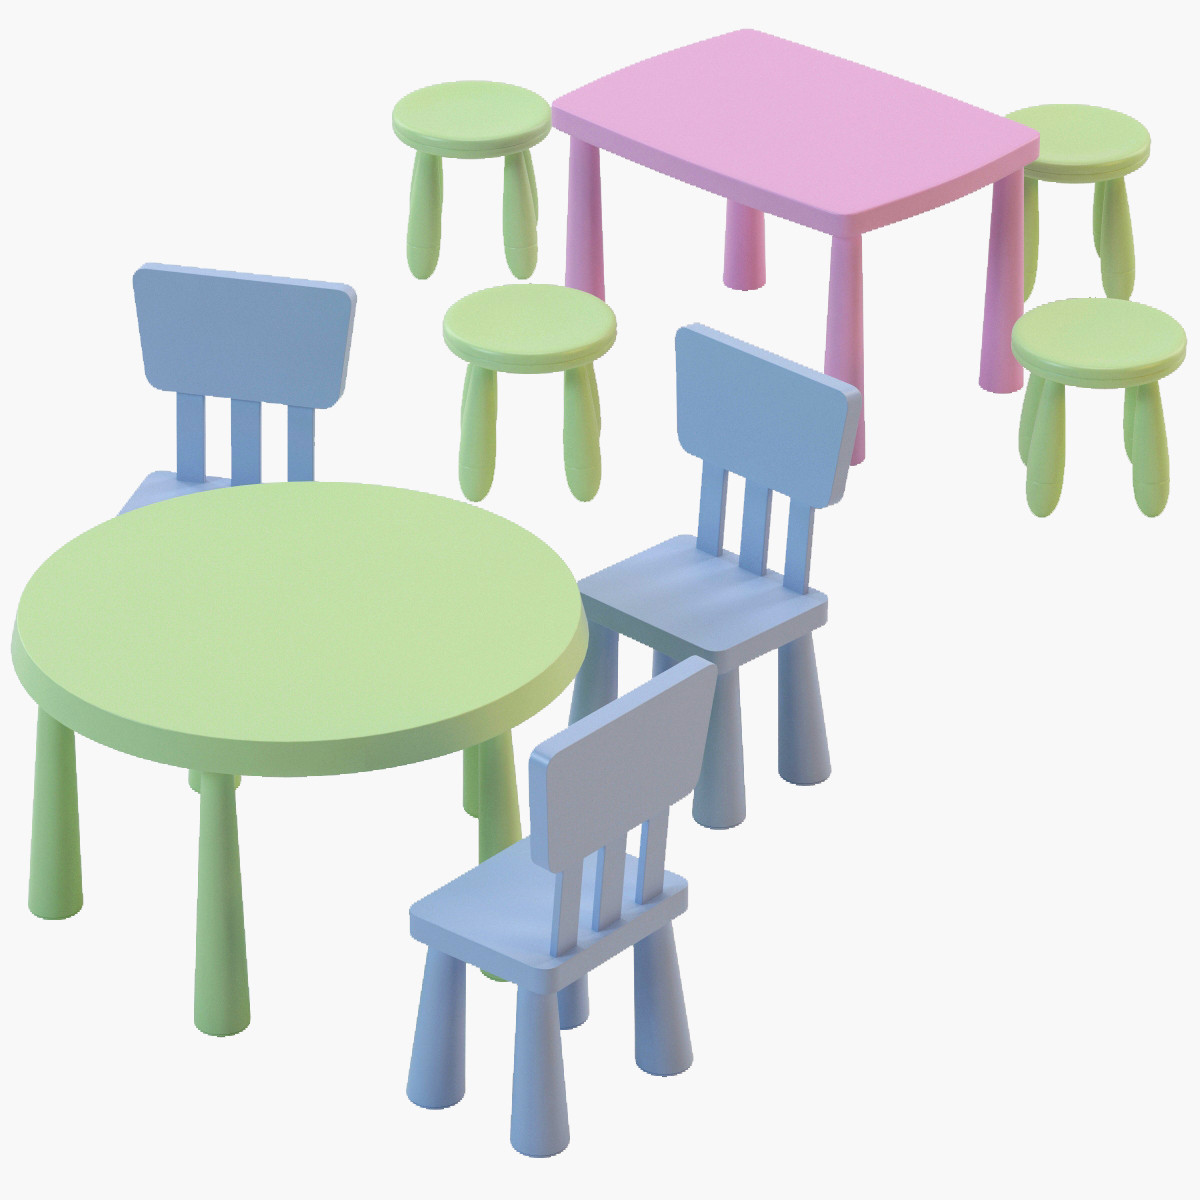 Ikea Childrens Plastic Table And Chairs Designs  sc 1 st  Table Designs & Ikea Childrens Plastic Table And Chairs - Table Designs